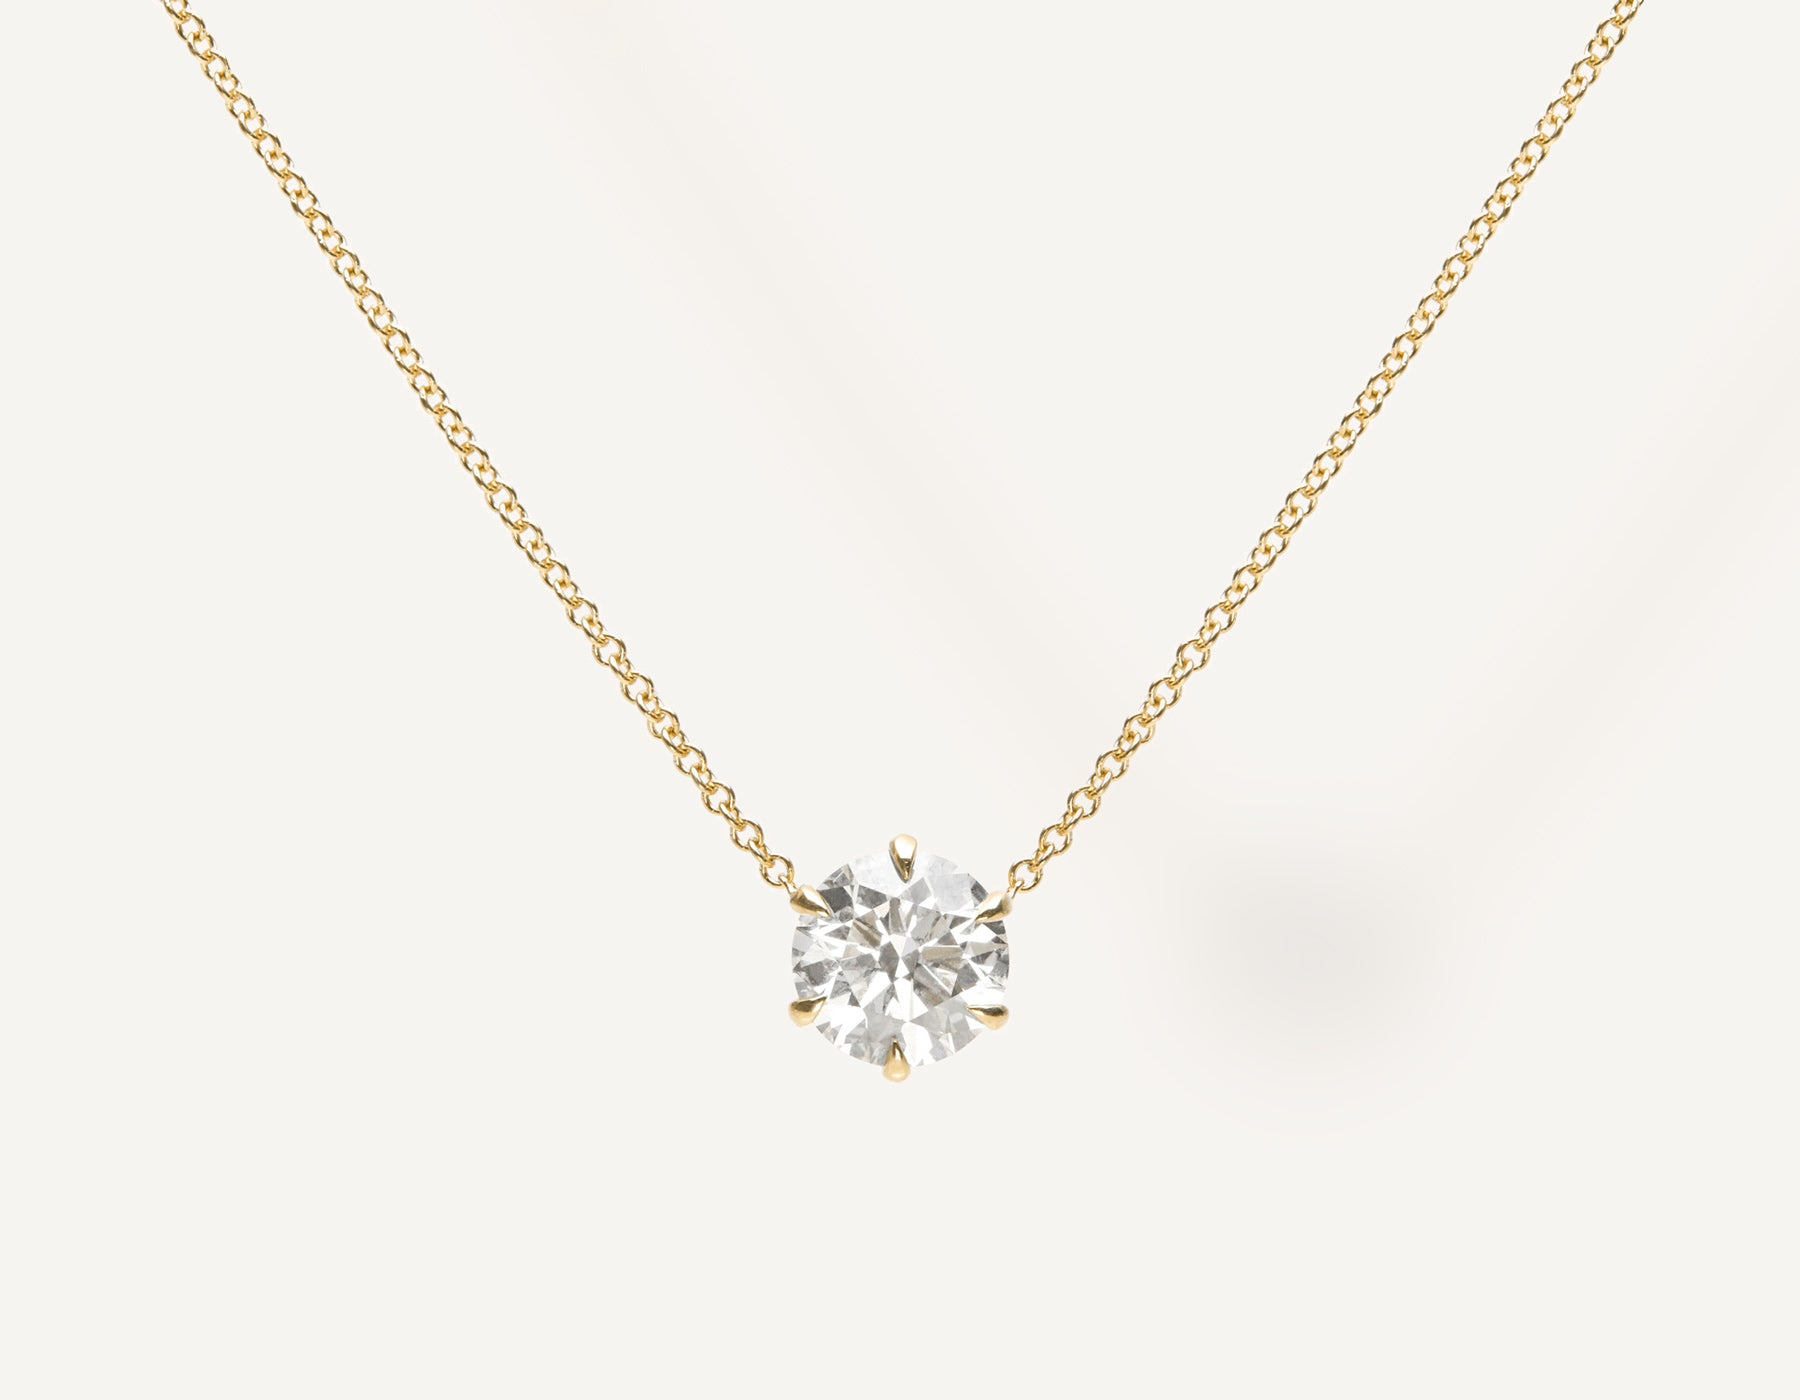 Simple Classic 1.0 ct Round Brilliant Diamond Necklace 18k solid gold oval link chain Vrai & Oro sustainable jewelry, 18K Yellow Gold